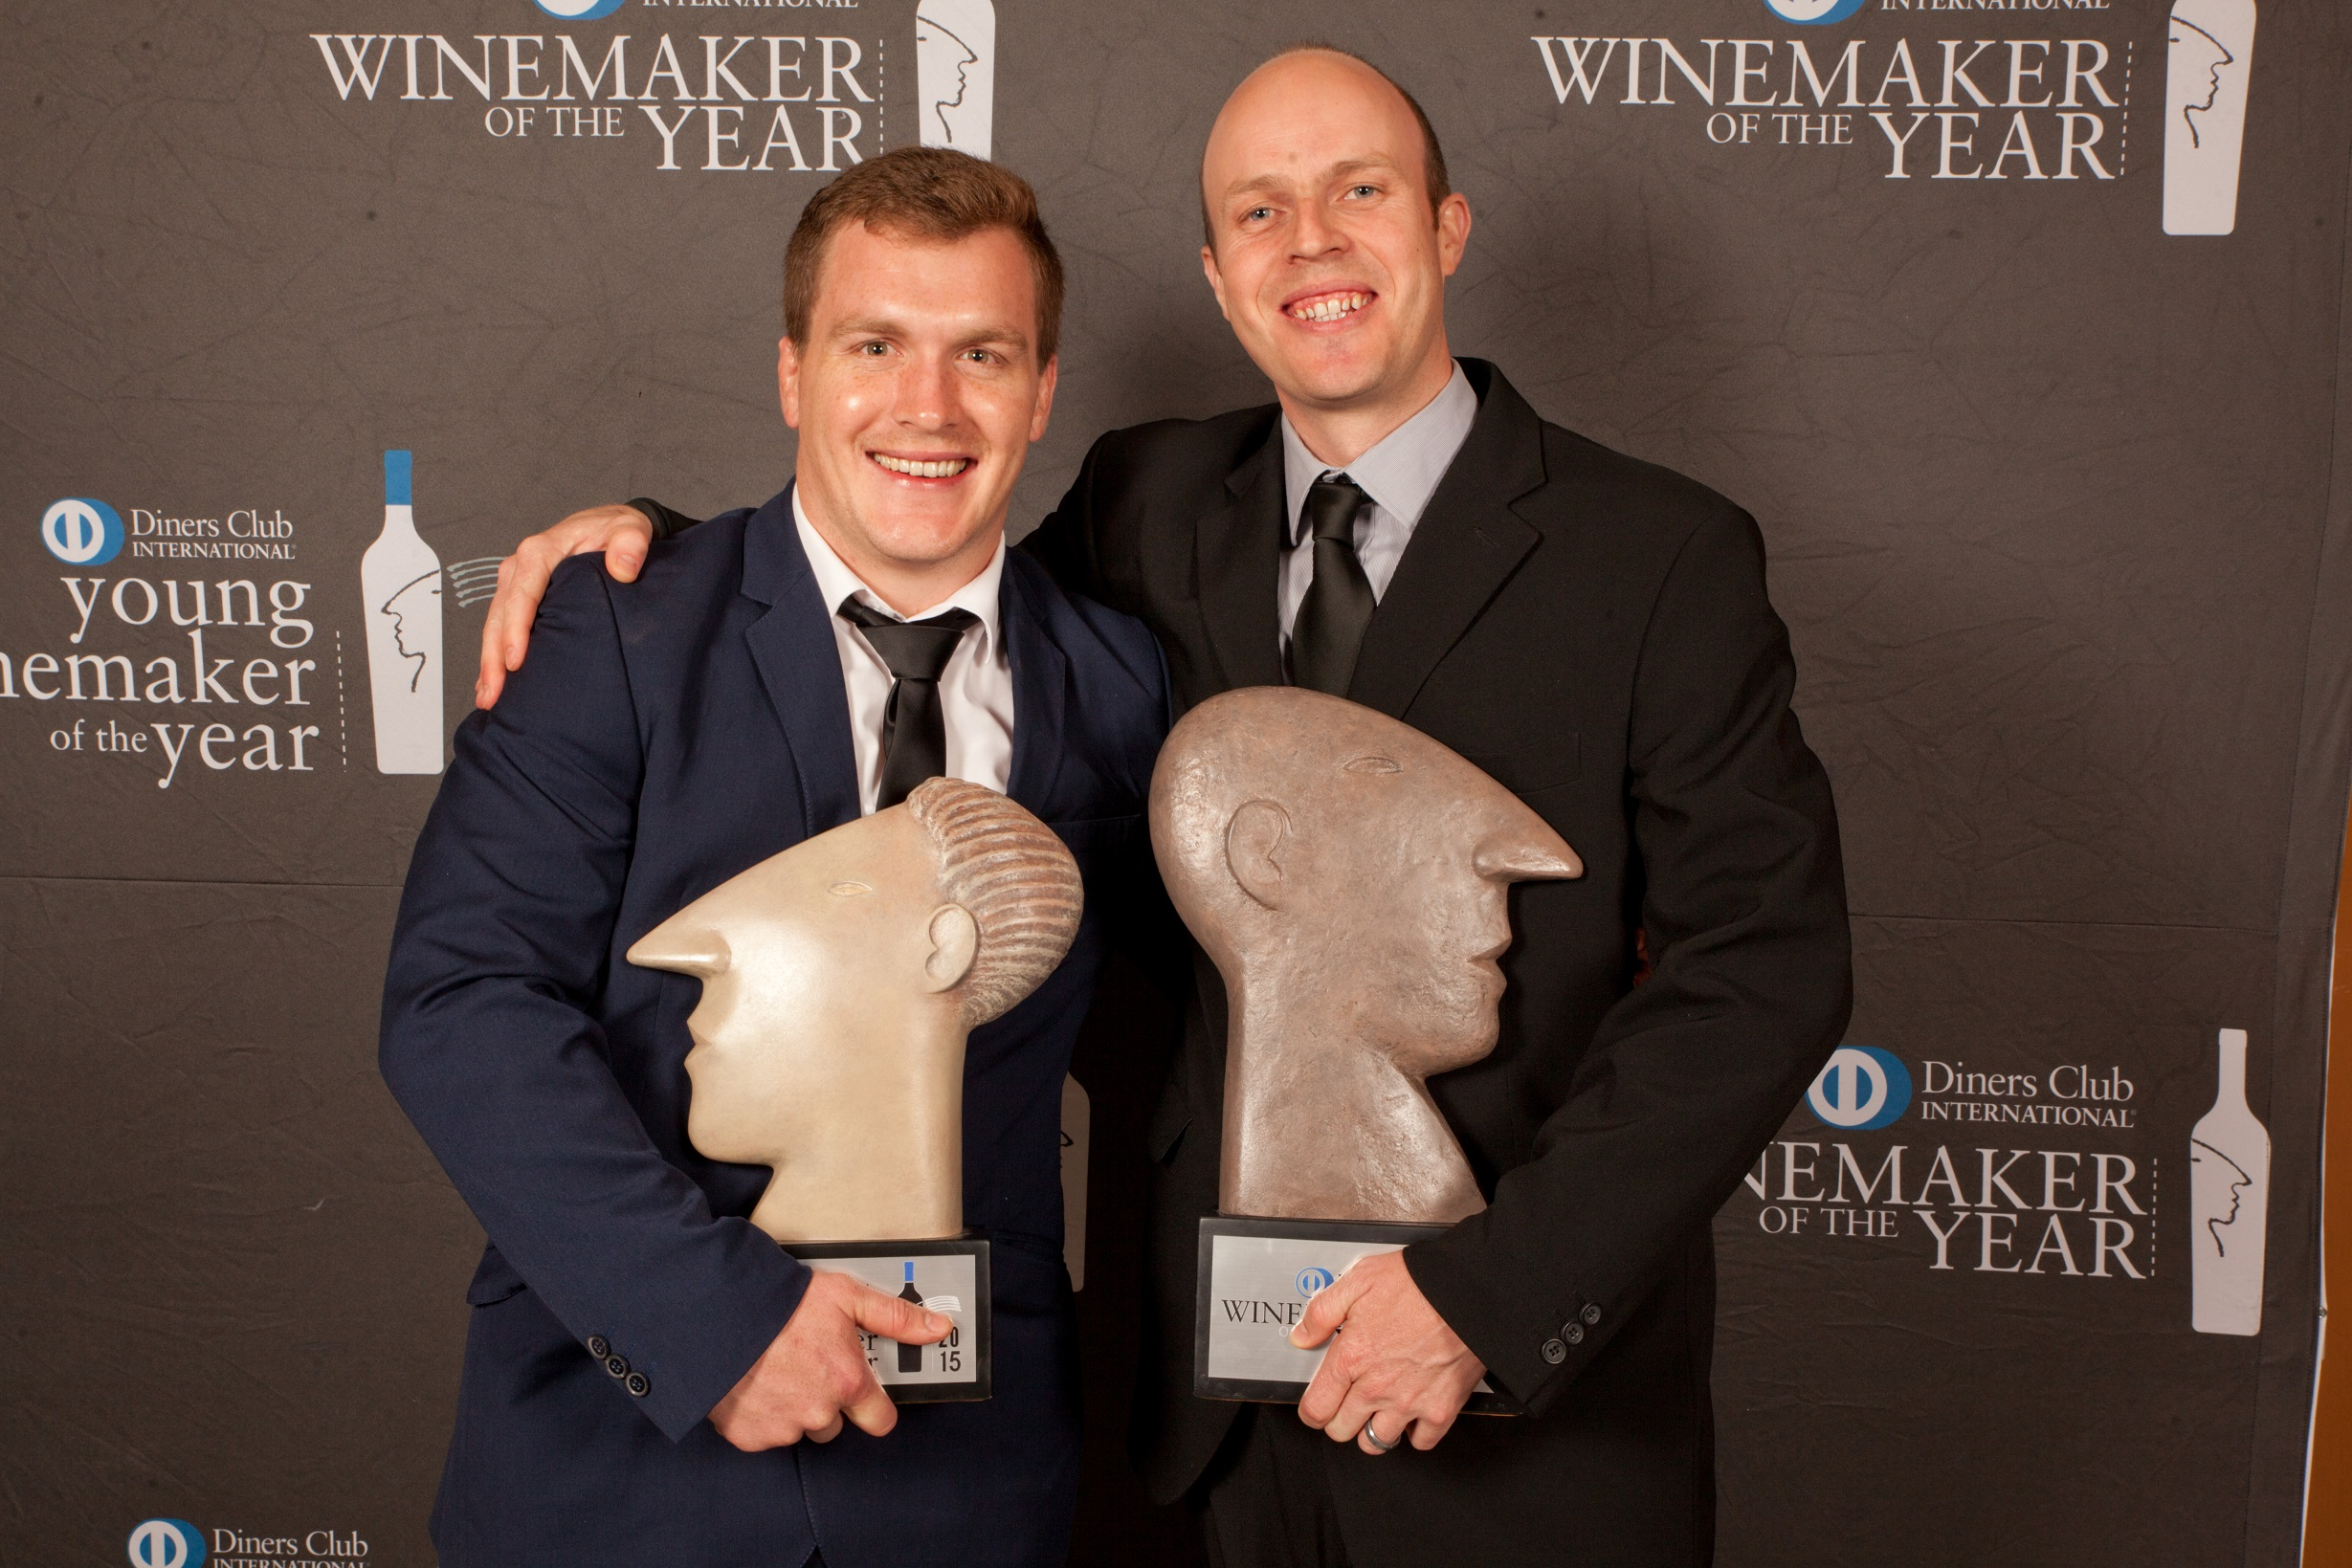 Diners Club Winemaker & Young Winemaker of The Year Winners 2015